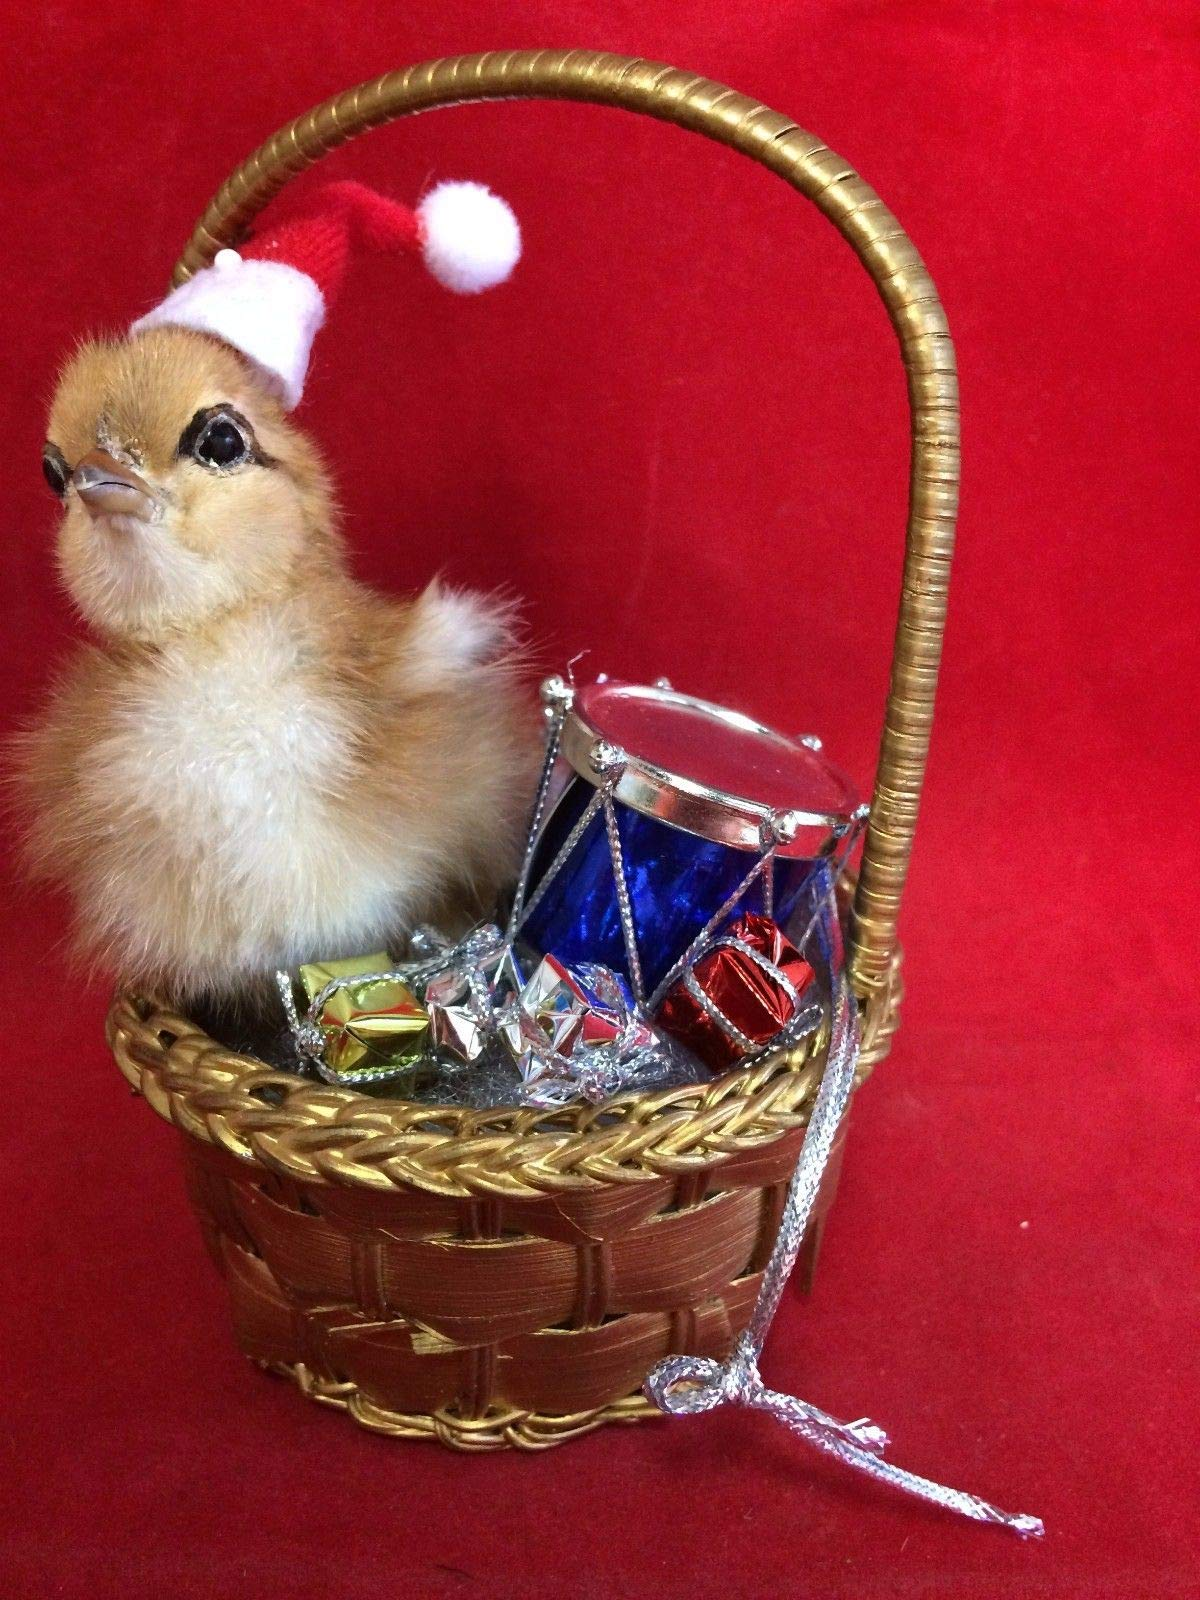 Santa Chick Taxidermy Ducky Chicken Christmas Gift in Basket w/Gifts